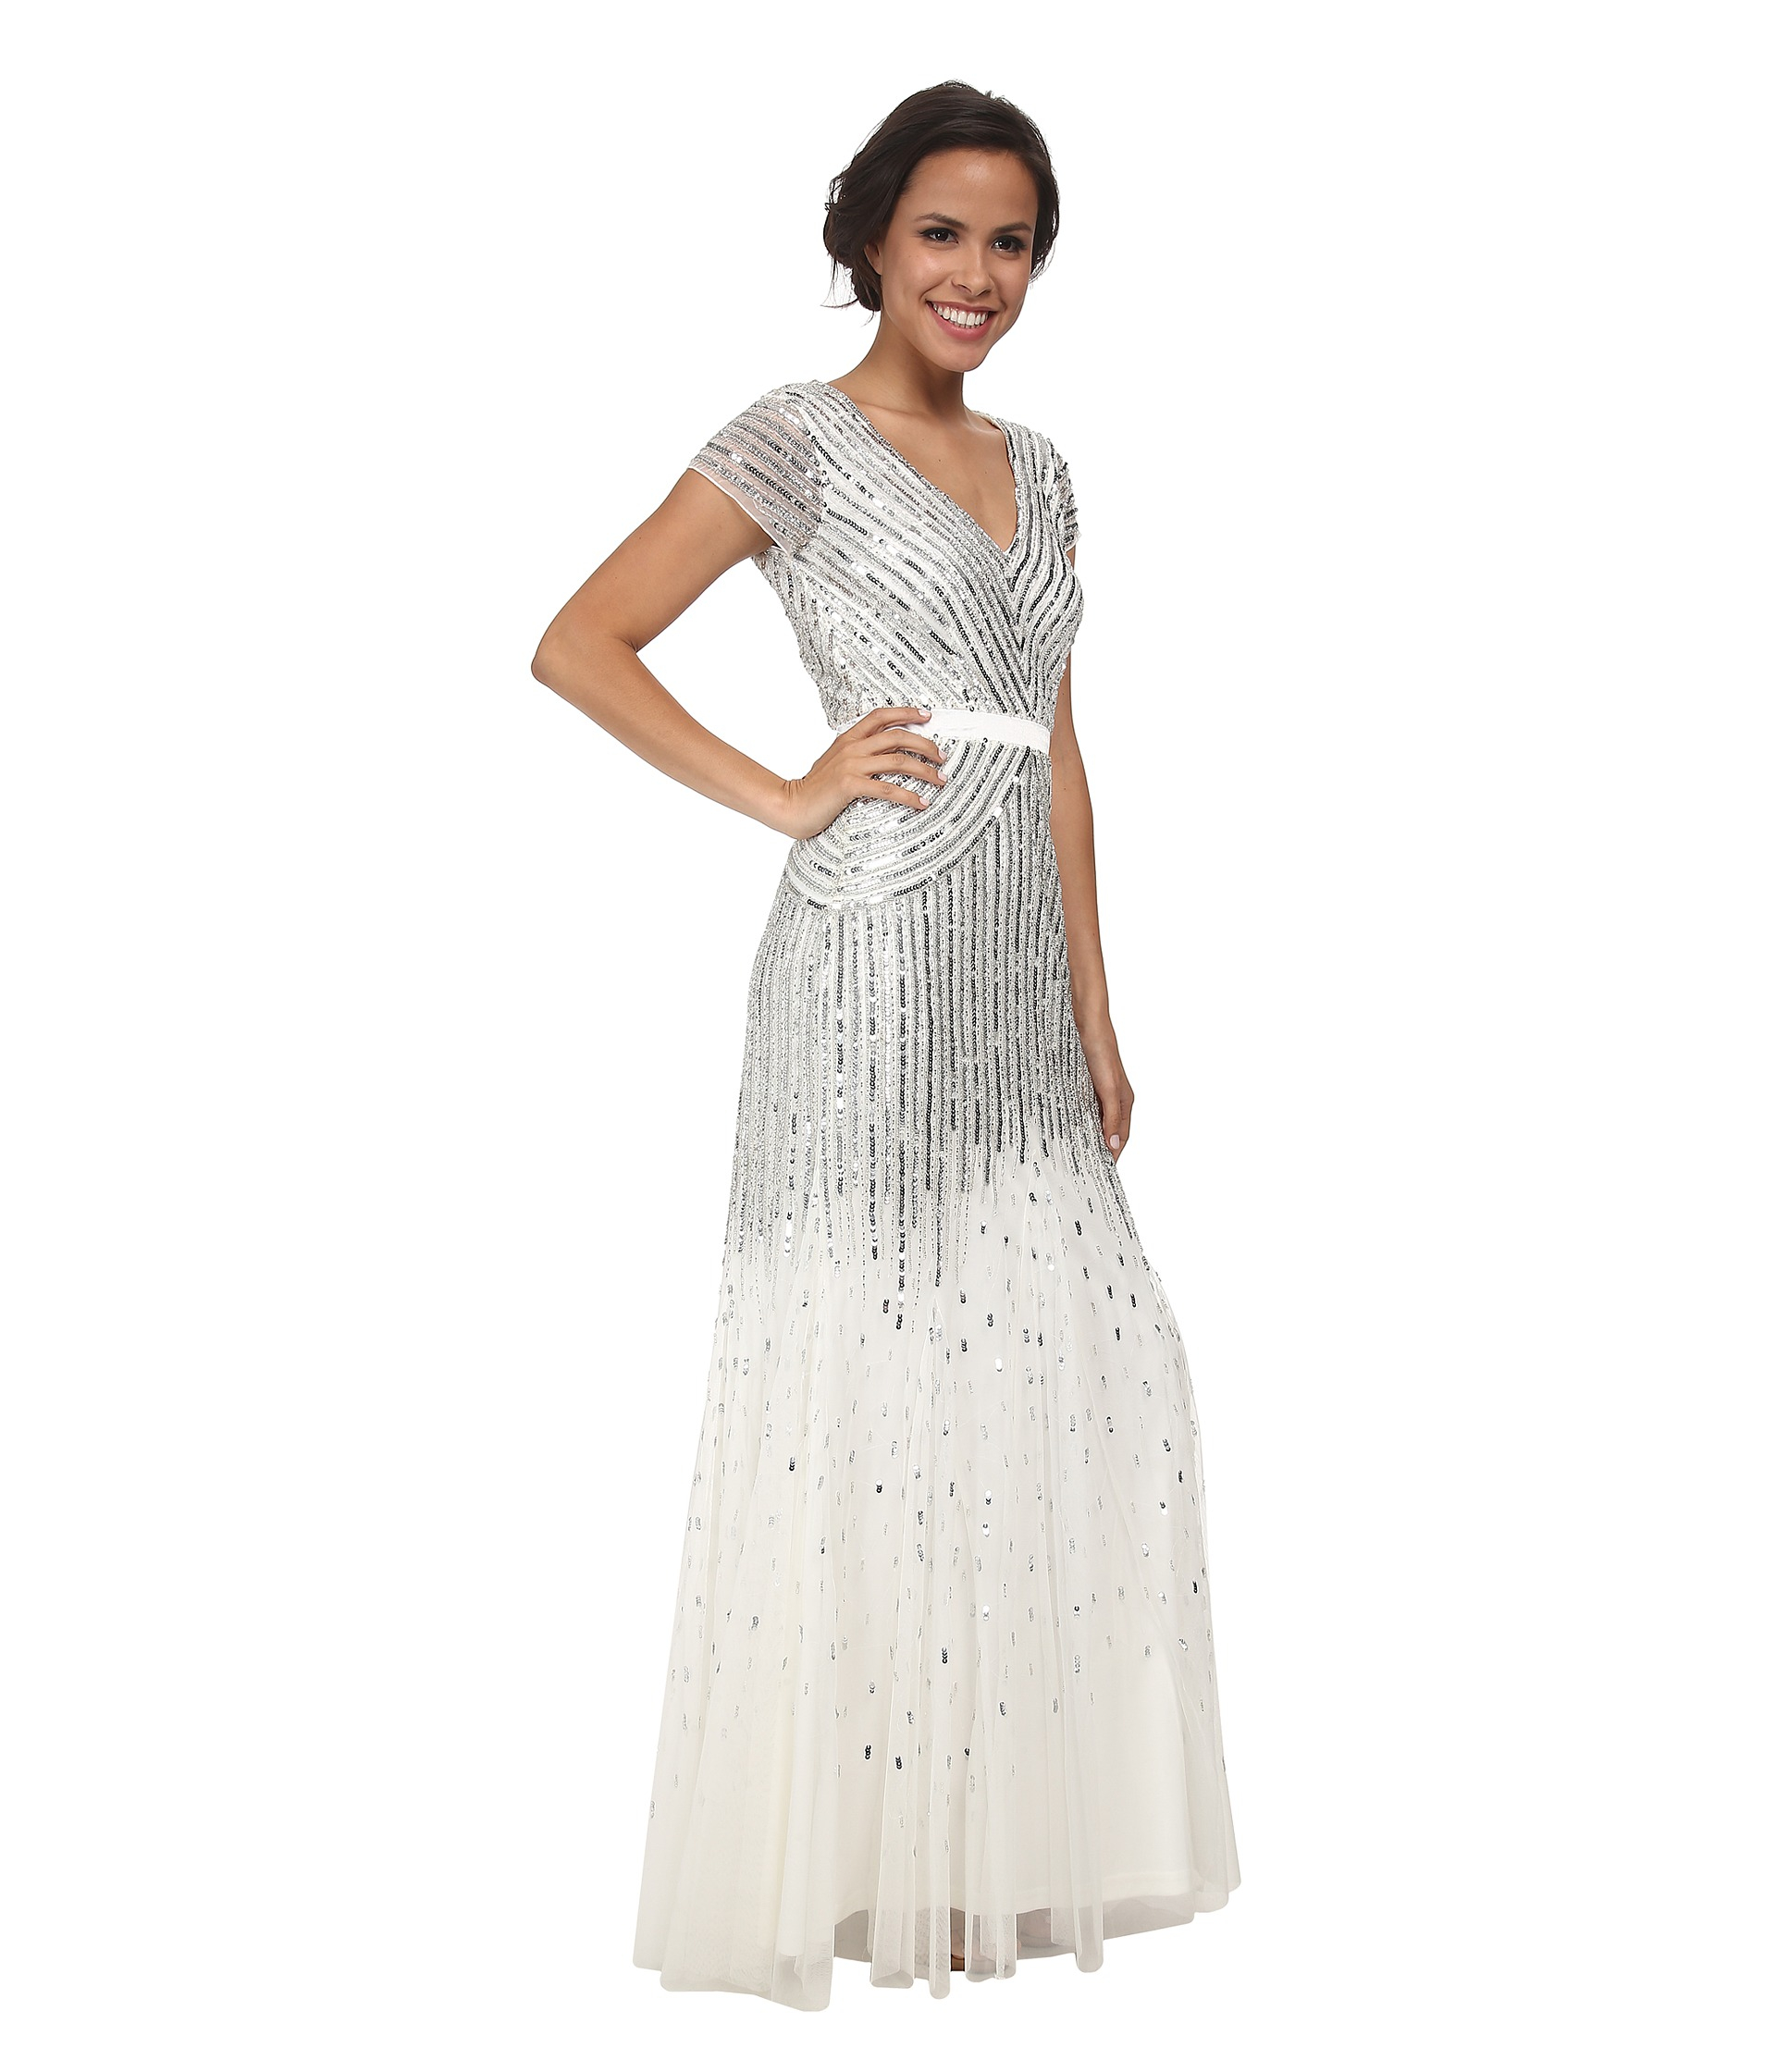 Lyst - Adrianna Papell Cap Sleeve Beaded Gown in Metallic fe78c56dc